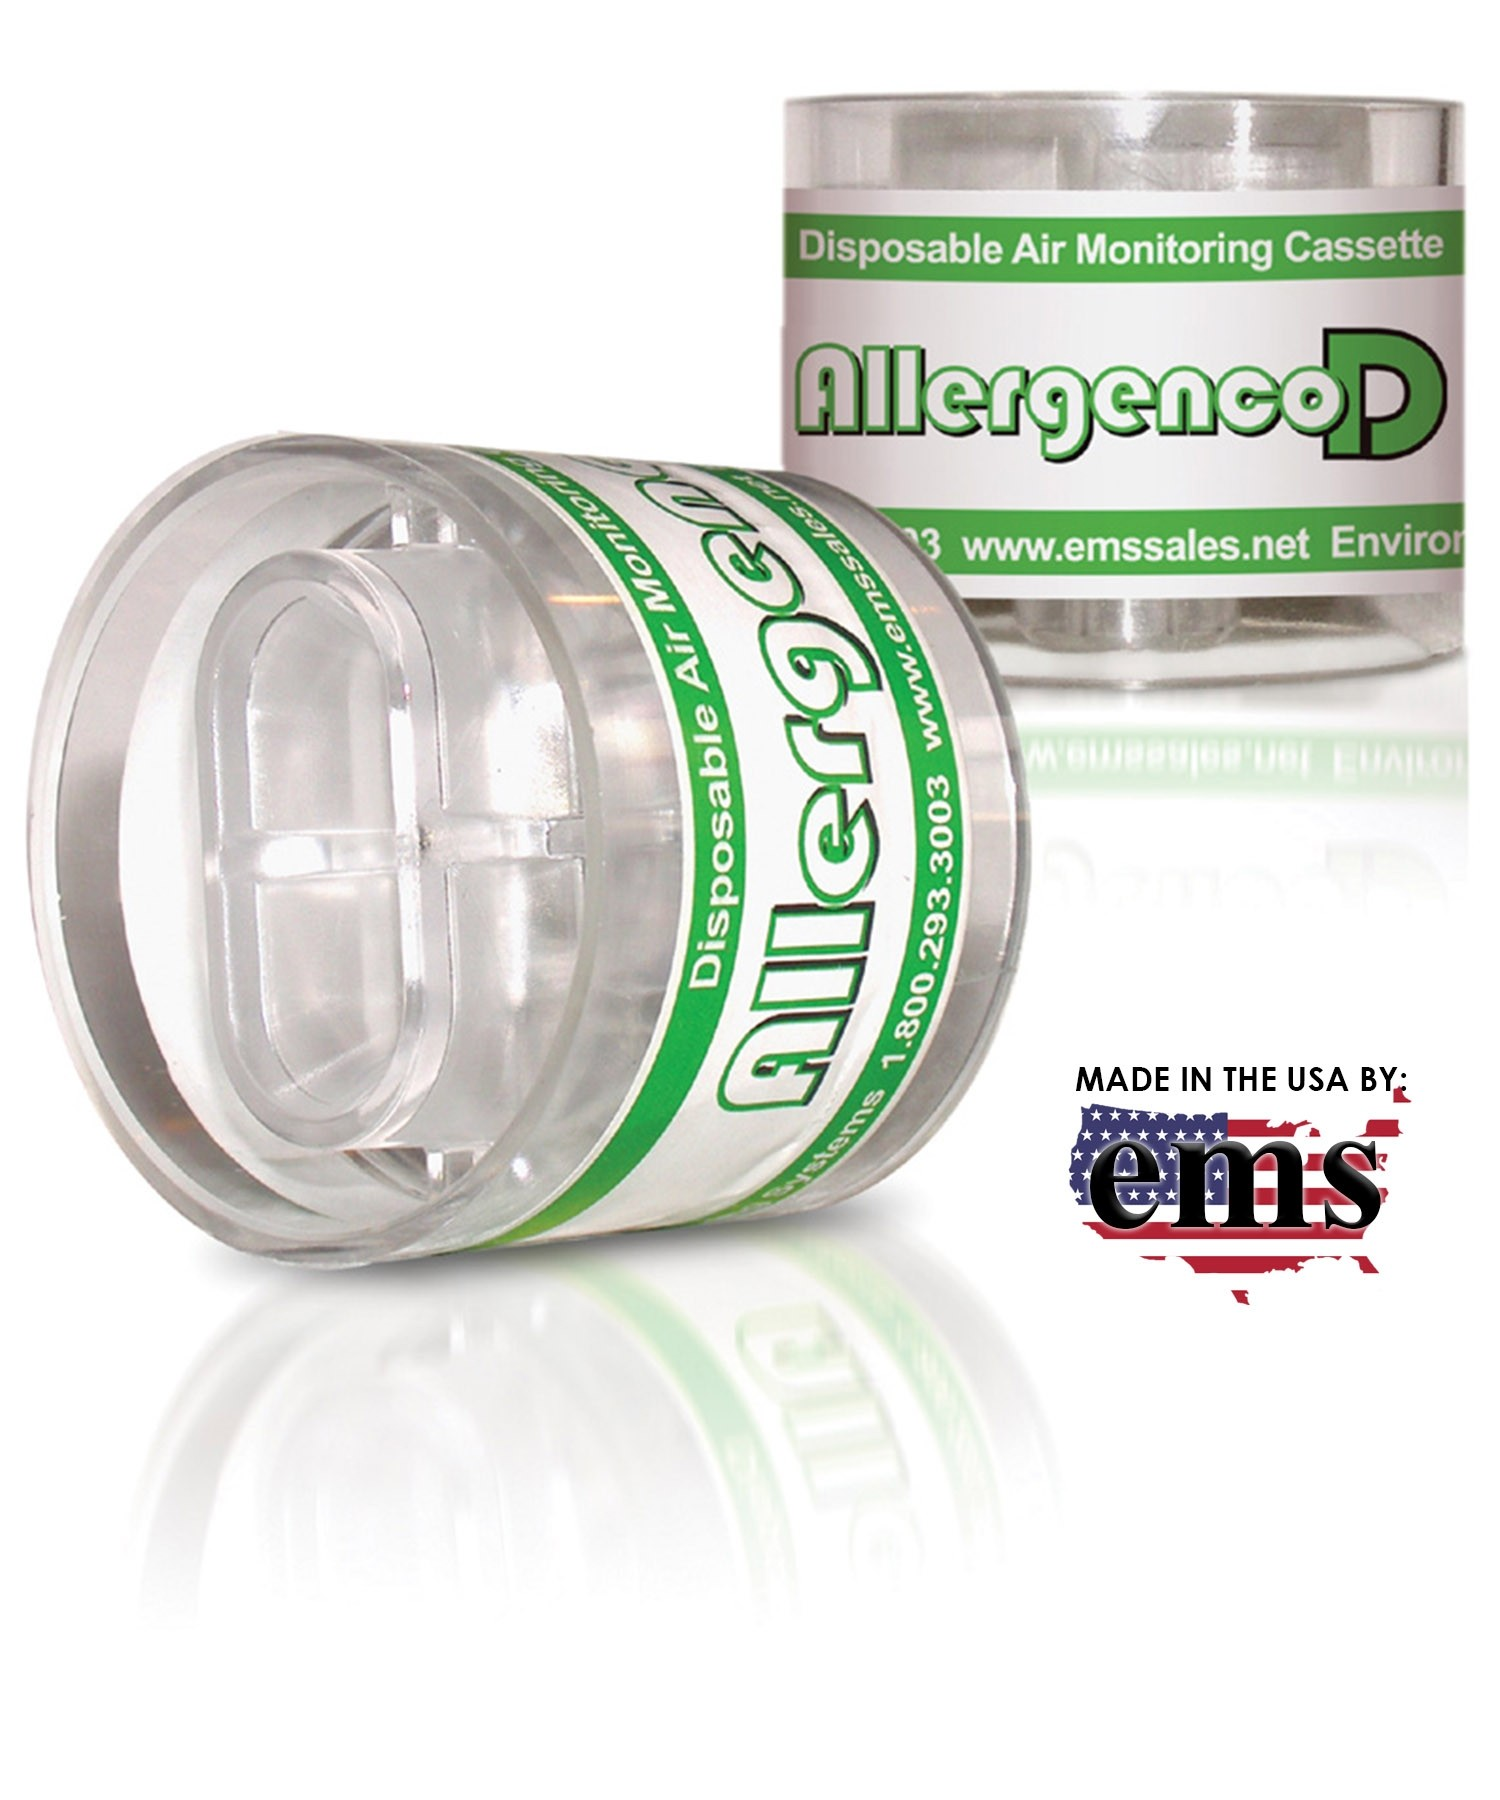 Allergenco-D Disposable IAQ Air Monitoring Cassettes, 10-pack